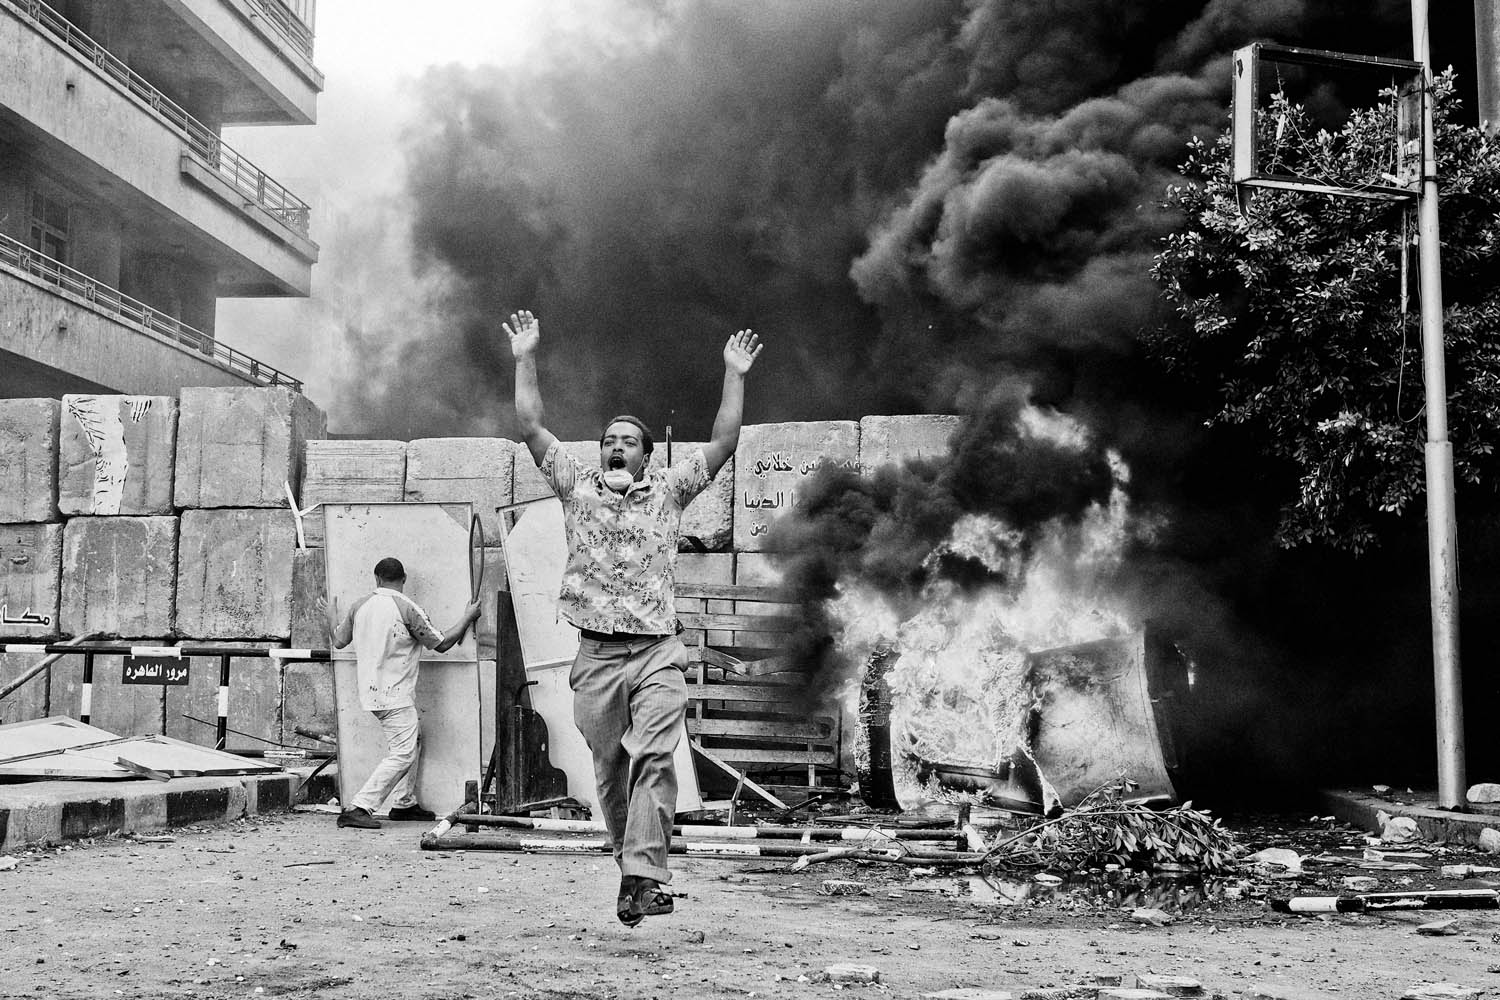 A protestor raises his arms in jubilation.